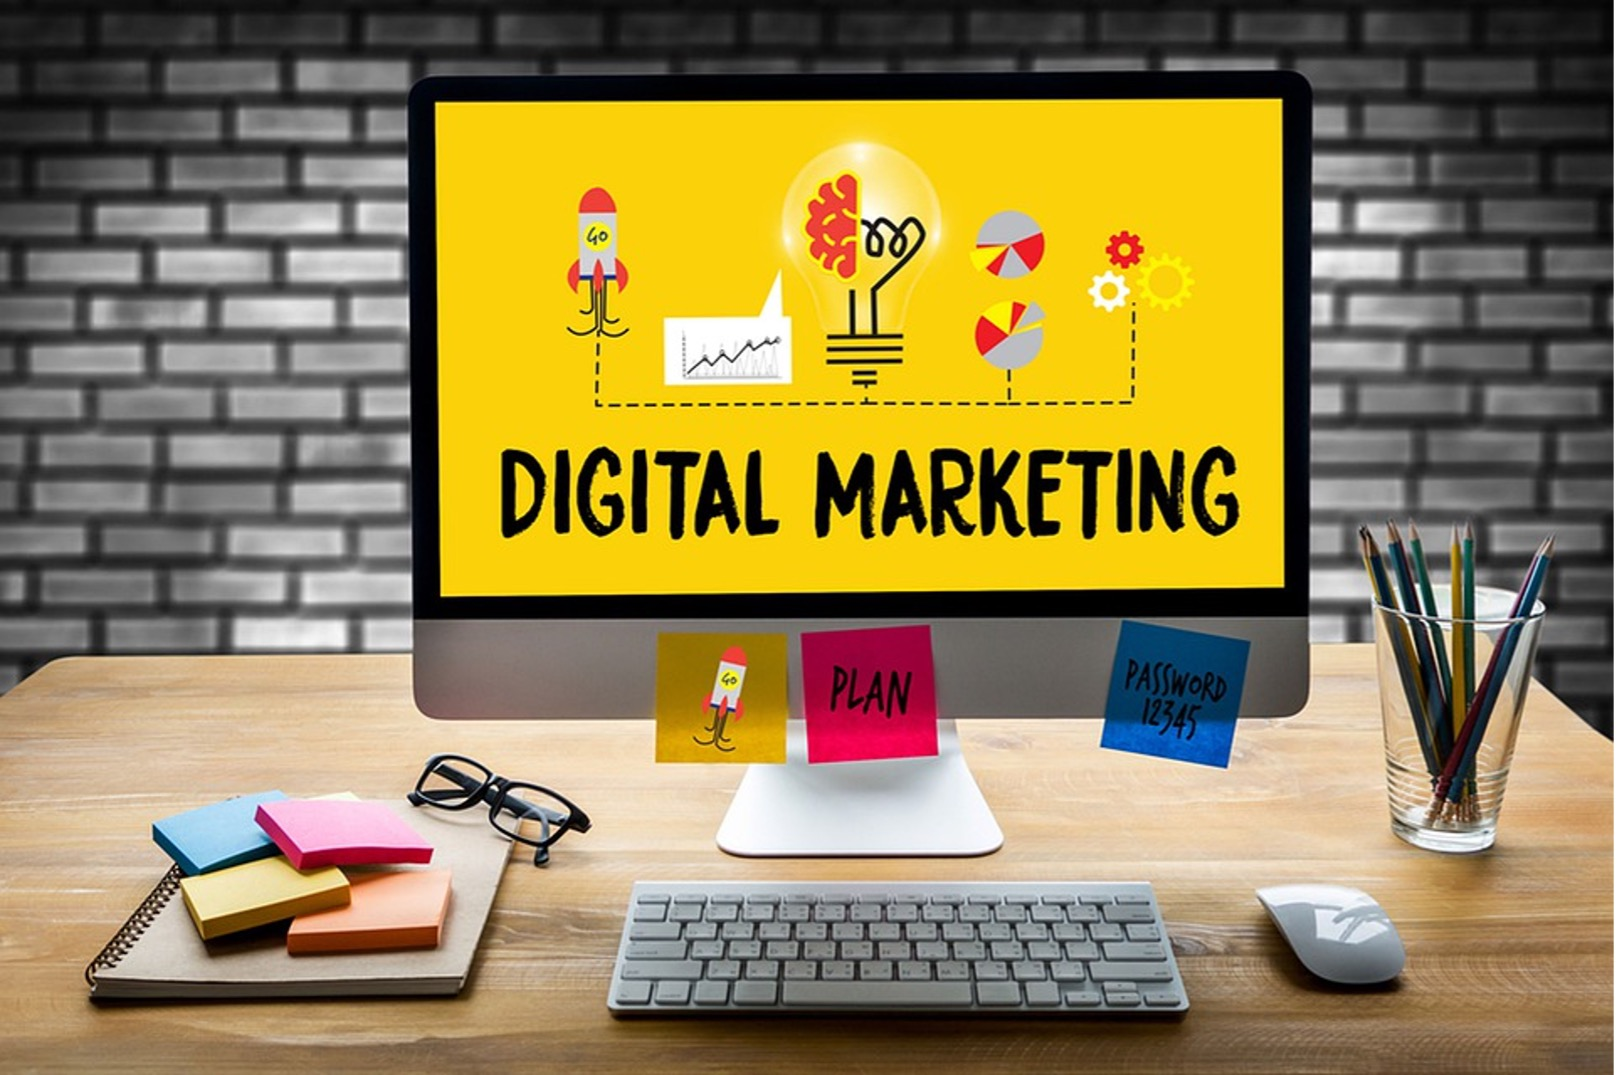 Comment intégrer le marketing digital dans sa stratégie marketing ?